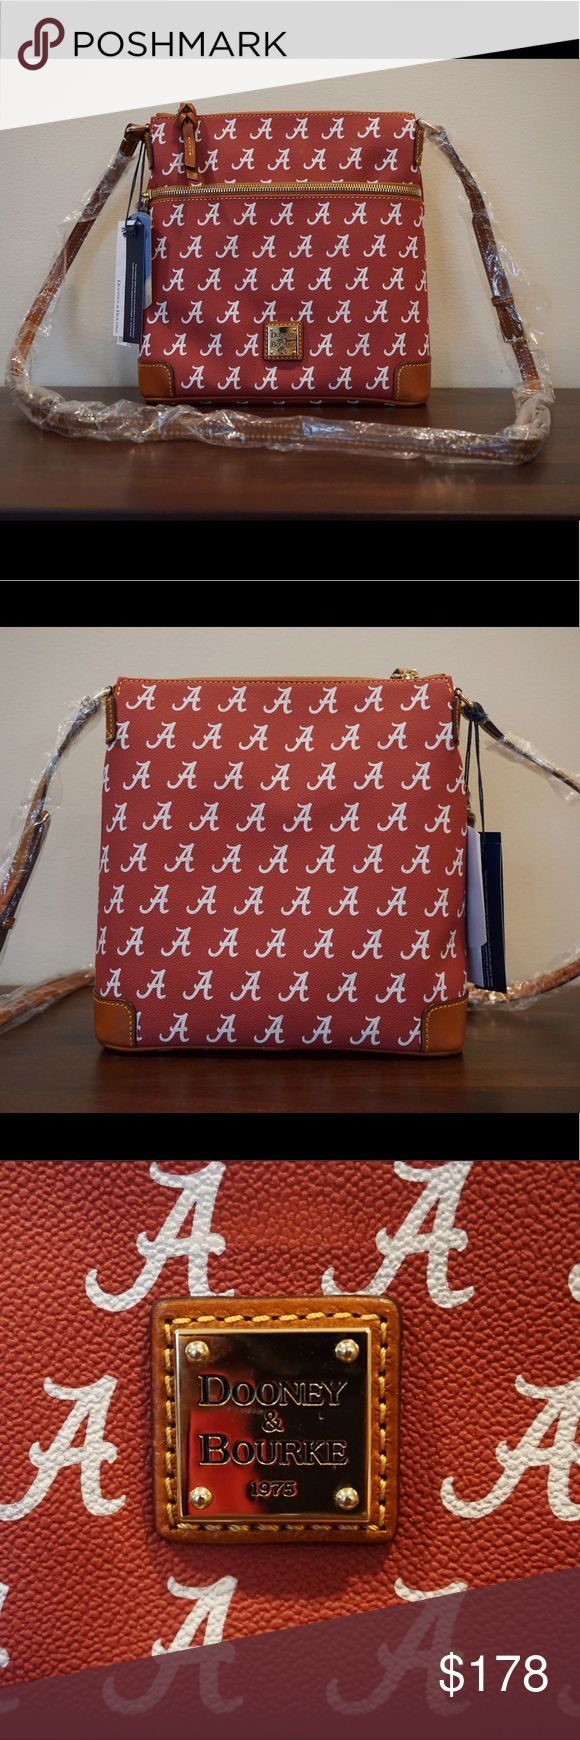 Selling this Alabama Crimson Tide Dooney & Bourke Purse on Poshmark! My username is: valleyvalerie. #shopmycloset #poshmark #fashion #shopping #style #forsale #Dooney & Bourke #Handbags